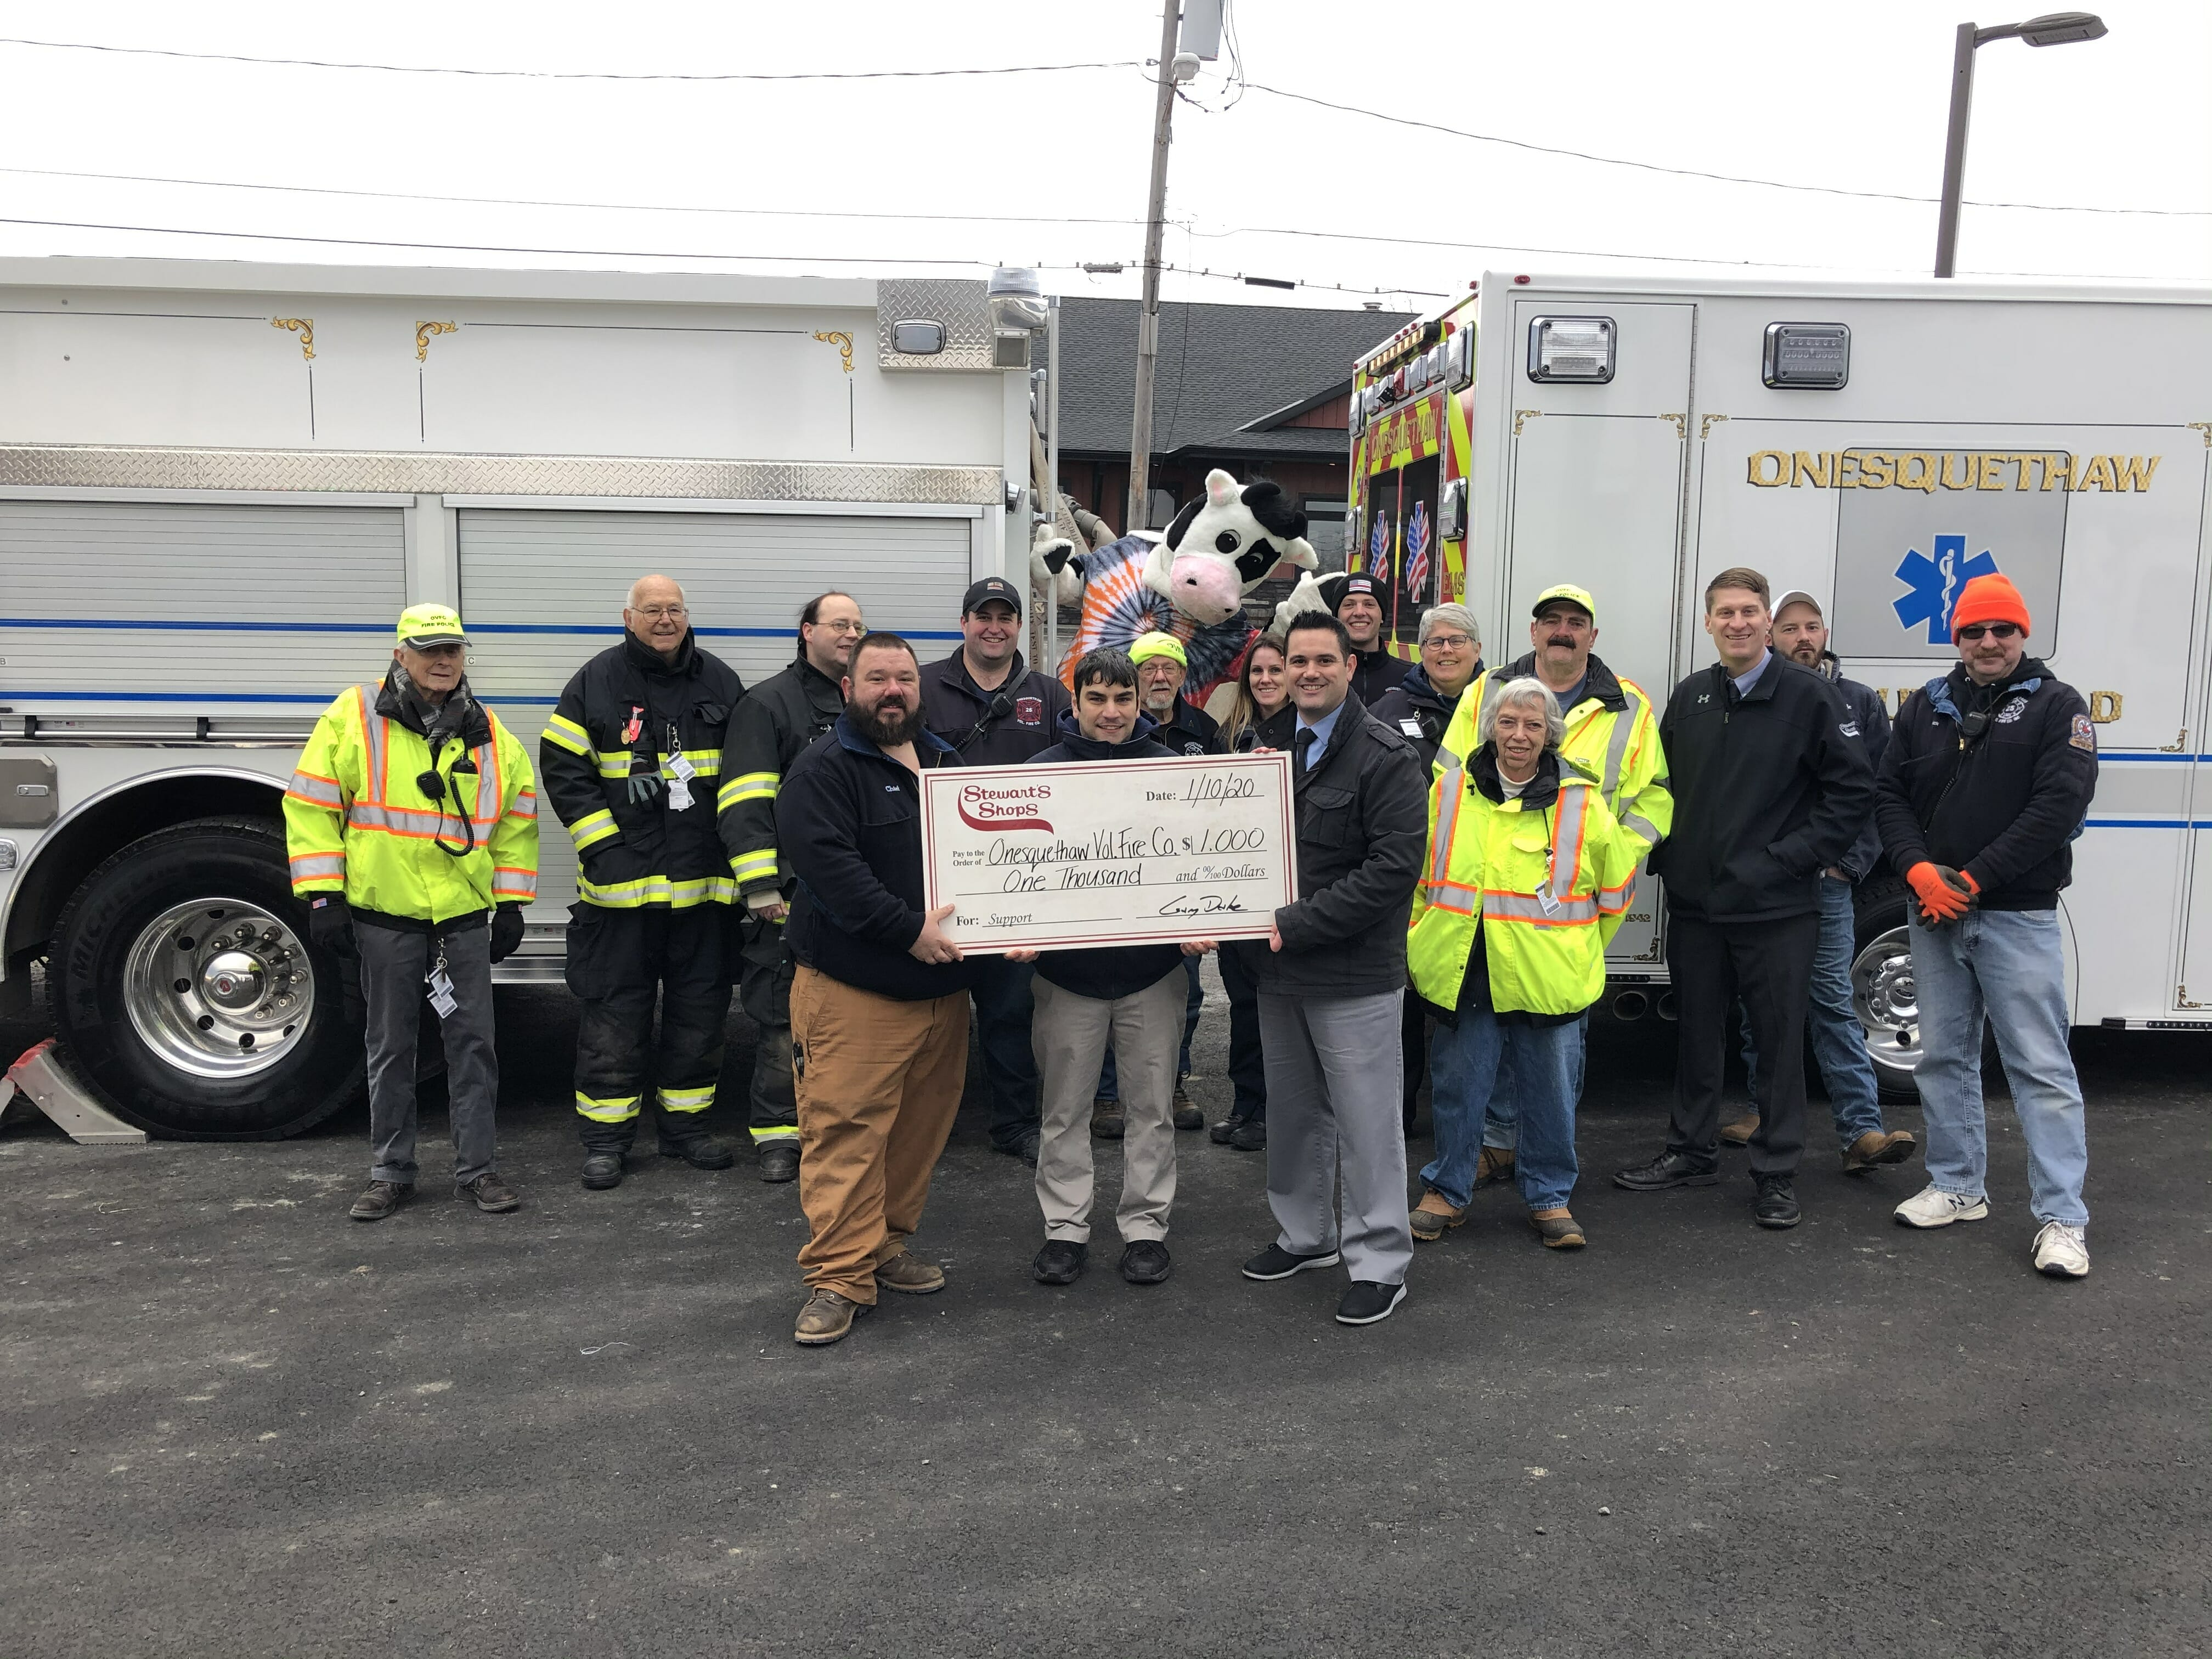 Check presentation to the fire station with a group of people and flavor the cow